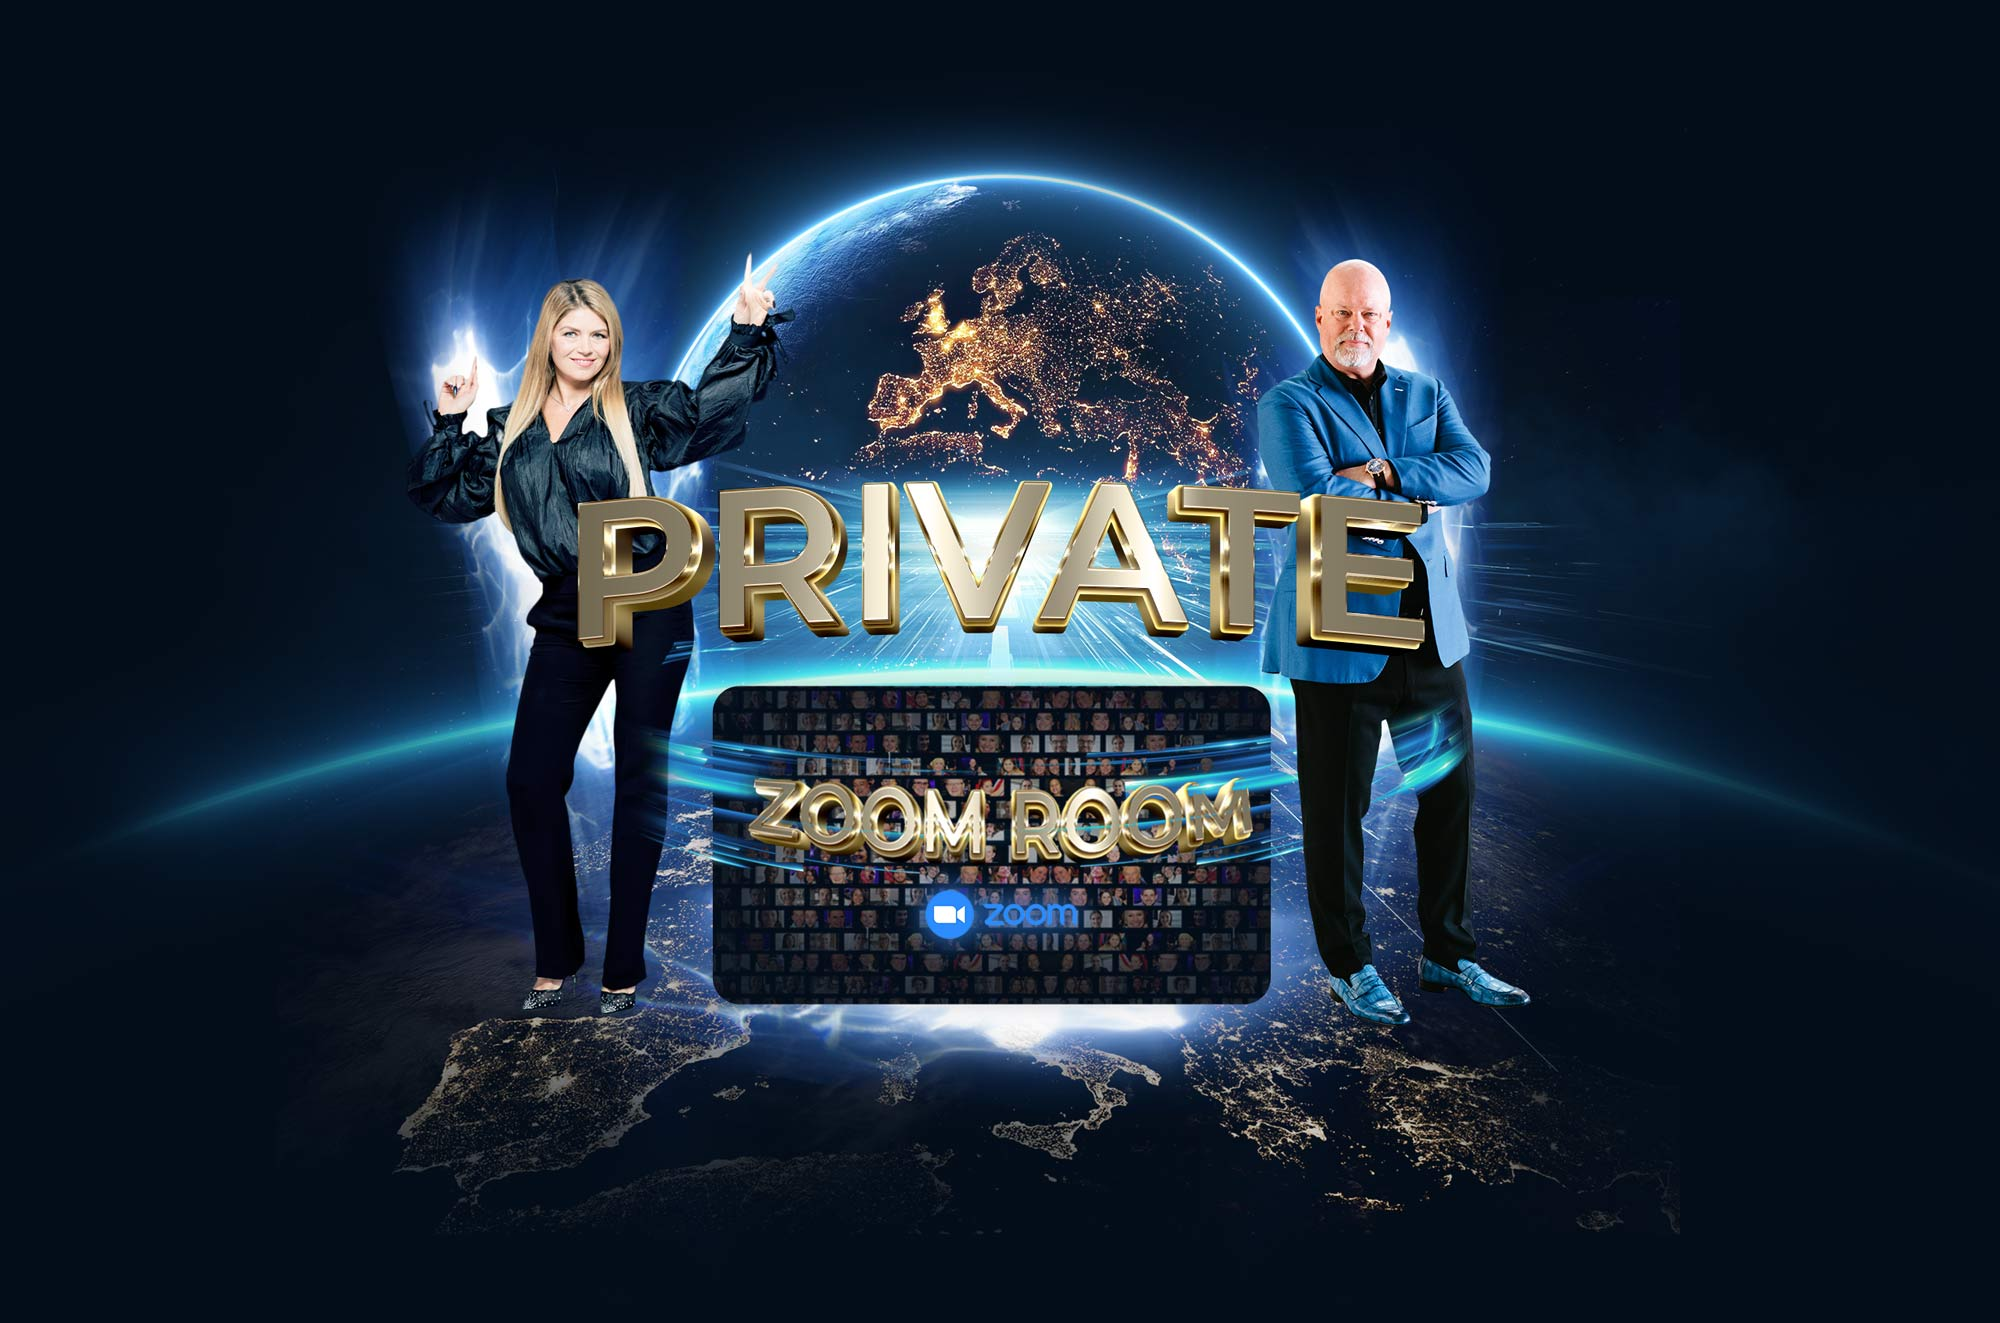 VIRTUAL GO PRO - Apply Here to become the Co-Host Eric Worre is inviting you to become a promotional partner to host your own private zoom room inside the Virtual Go Pro Event